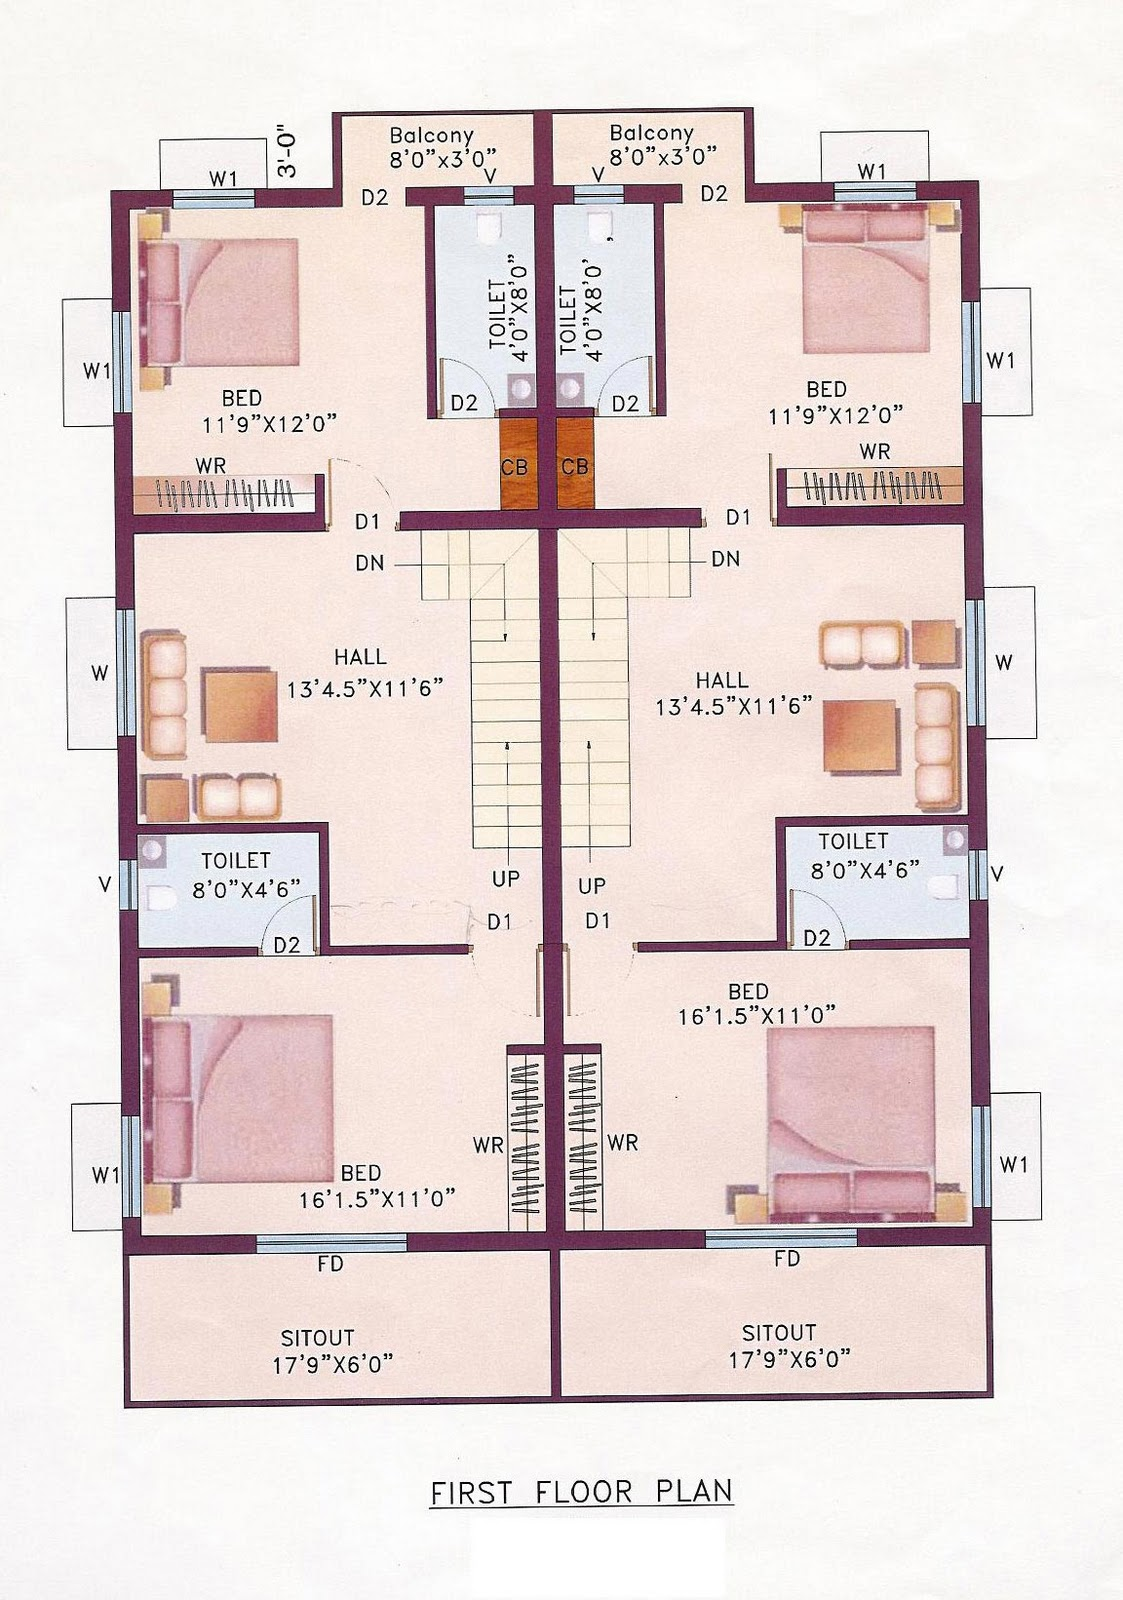 House plans indian floor plans for Floor plans of houses in india